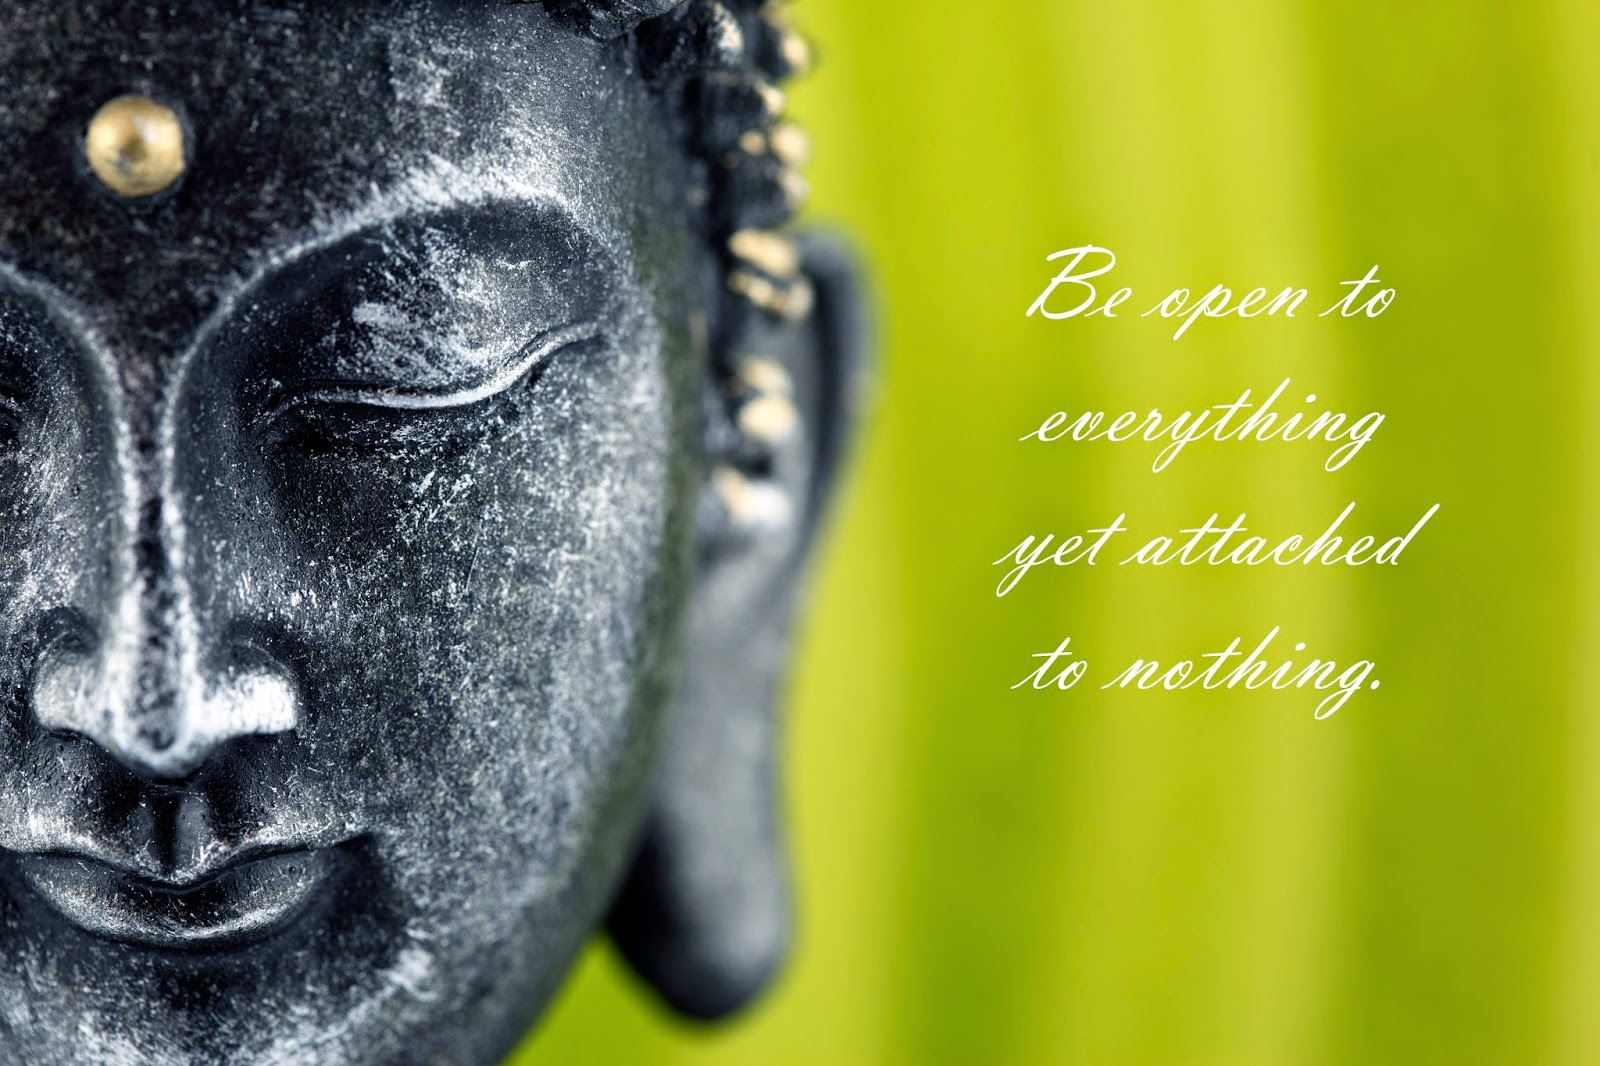 Buddha Quotes On Happiness Best Buddha Wallpapers With Quotes On Life And Happiness Hd Pictures